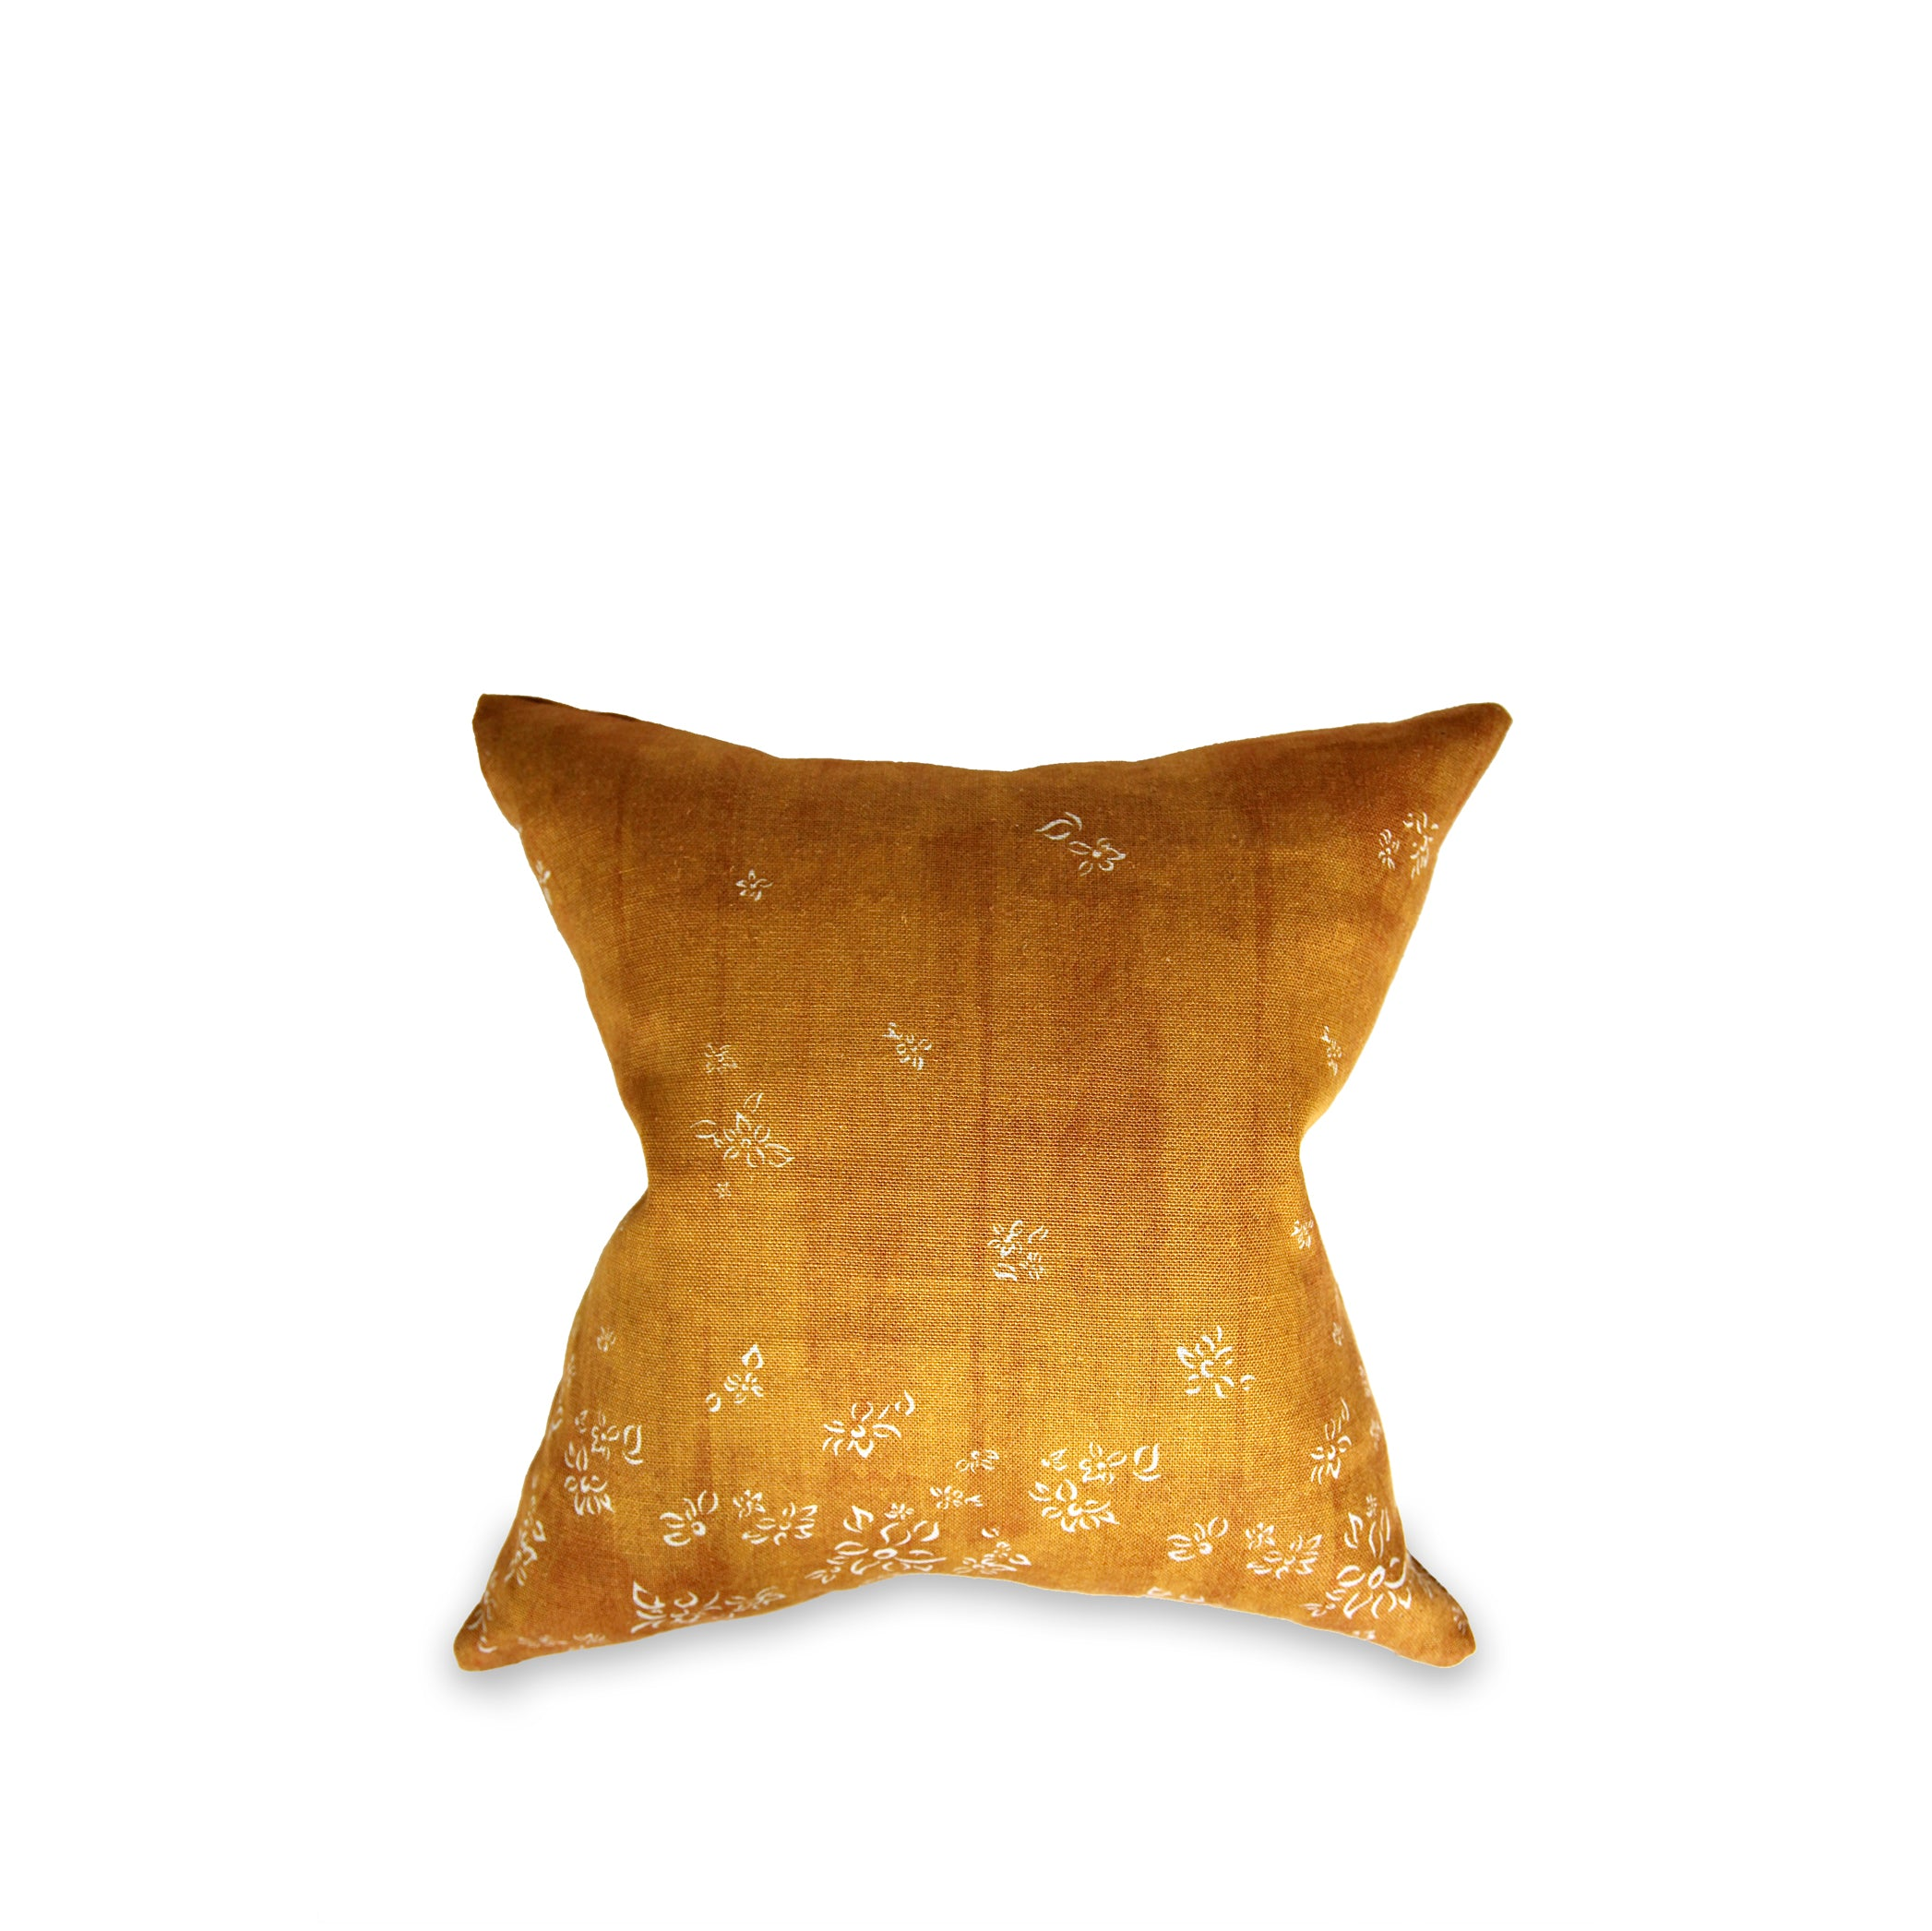 Heavy Linen Falling Flower Cushion in Full Field Mustard Yellow, 50cm x 50cm